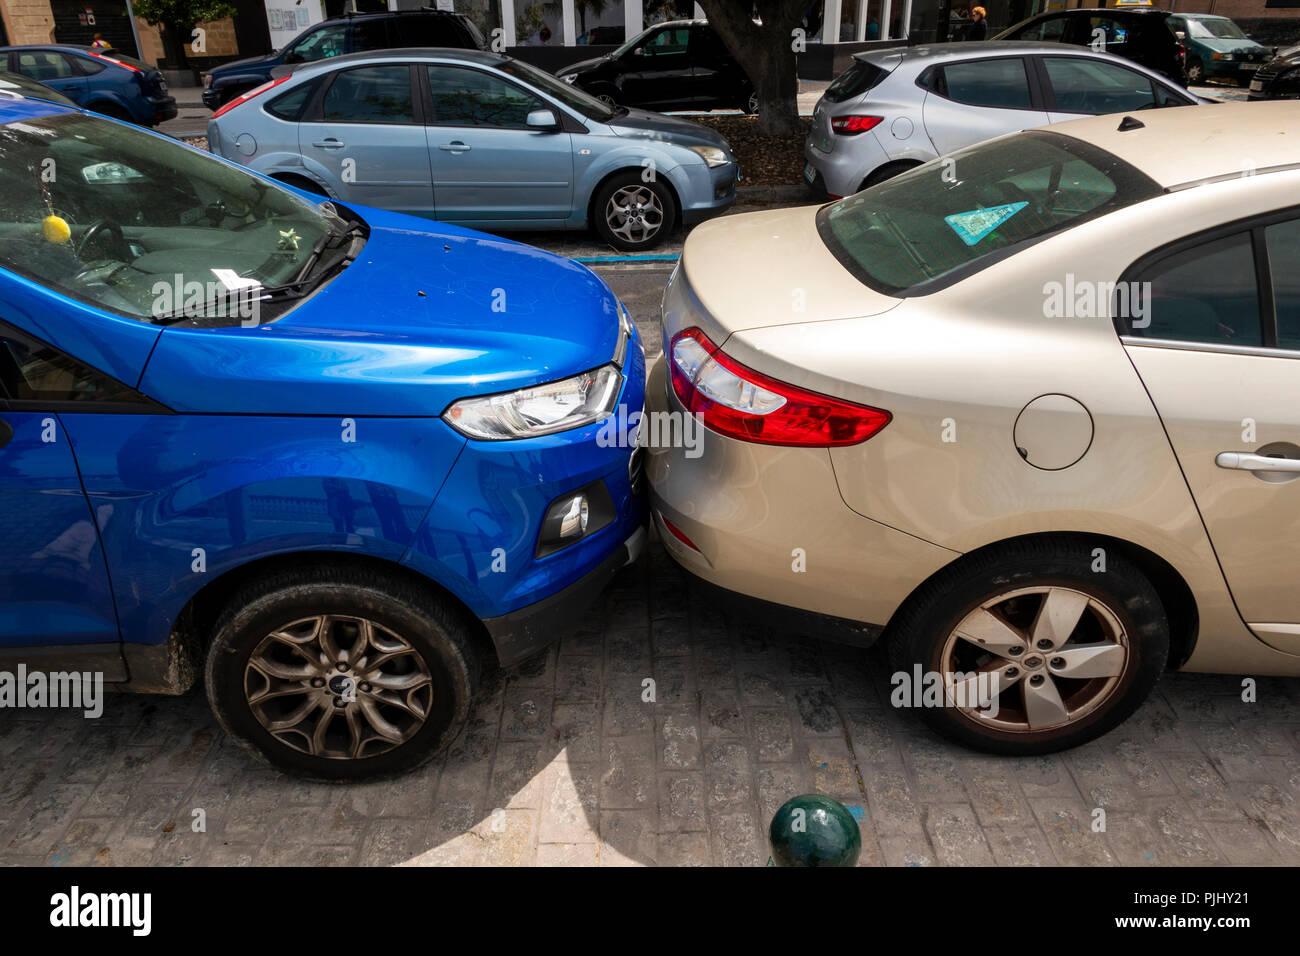 Spain, Cadiz, Alameda Apodaca, Terrible Parking, car parked against bumper of neighbour	 - Stock Image